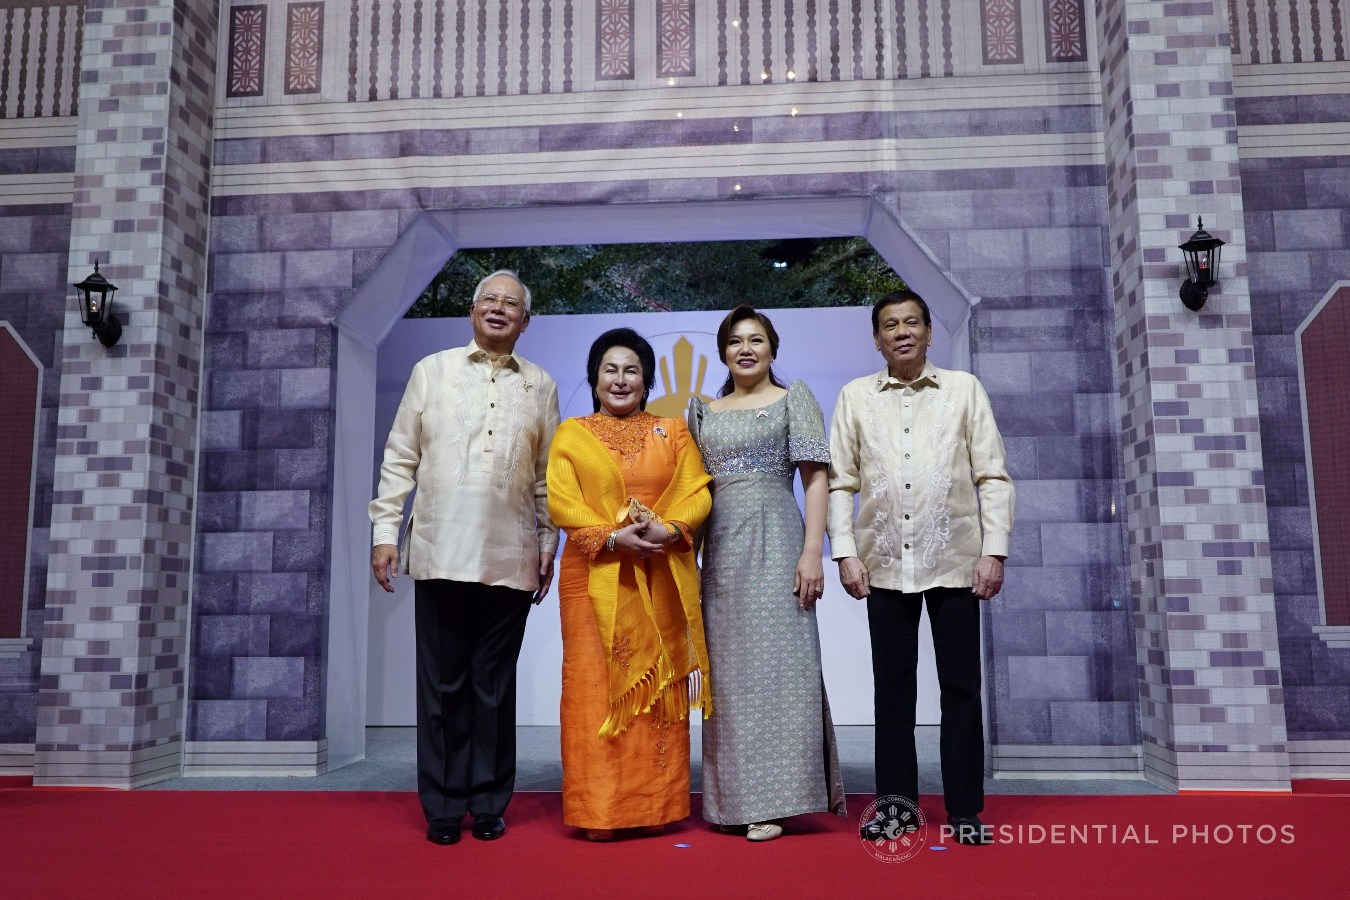 President Rodrigo Roa Duterte and his partner Honeylet pose for a photo with Malaysia Prime Minister Najib Razak and his partner Rosmah Mansoor prior to the start of the gala dinner hosted by the Philippines for the leaders of the Association of Southeast Asian Nations (ASEAN) member states and dialogue partners at the SMX Convention Center in Pasay City on November 12, 2017. KING RODRIGUEZ/PRESIDENTIAL PHOTO